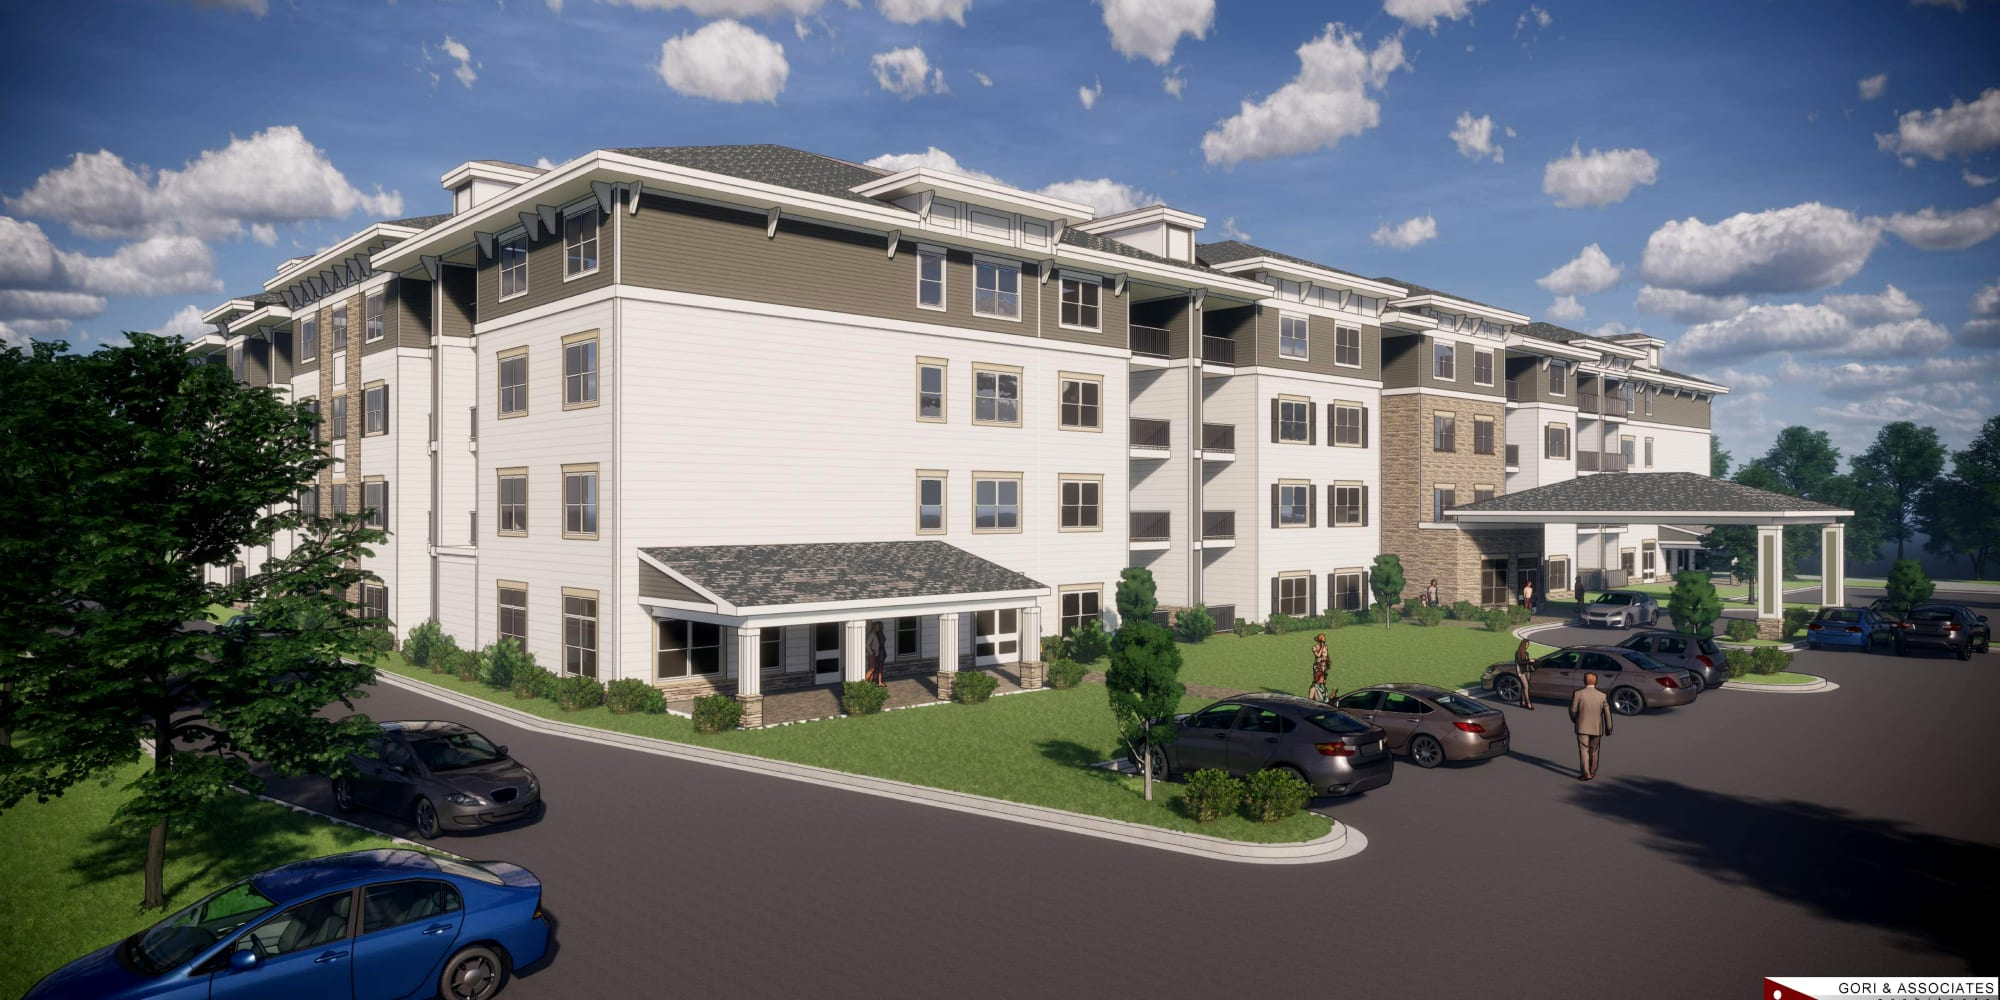 Rendering of Keystone Place at Richland Creek in O'Fallon, Illinois.